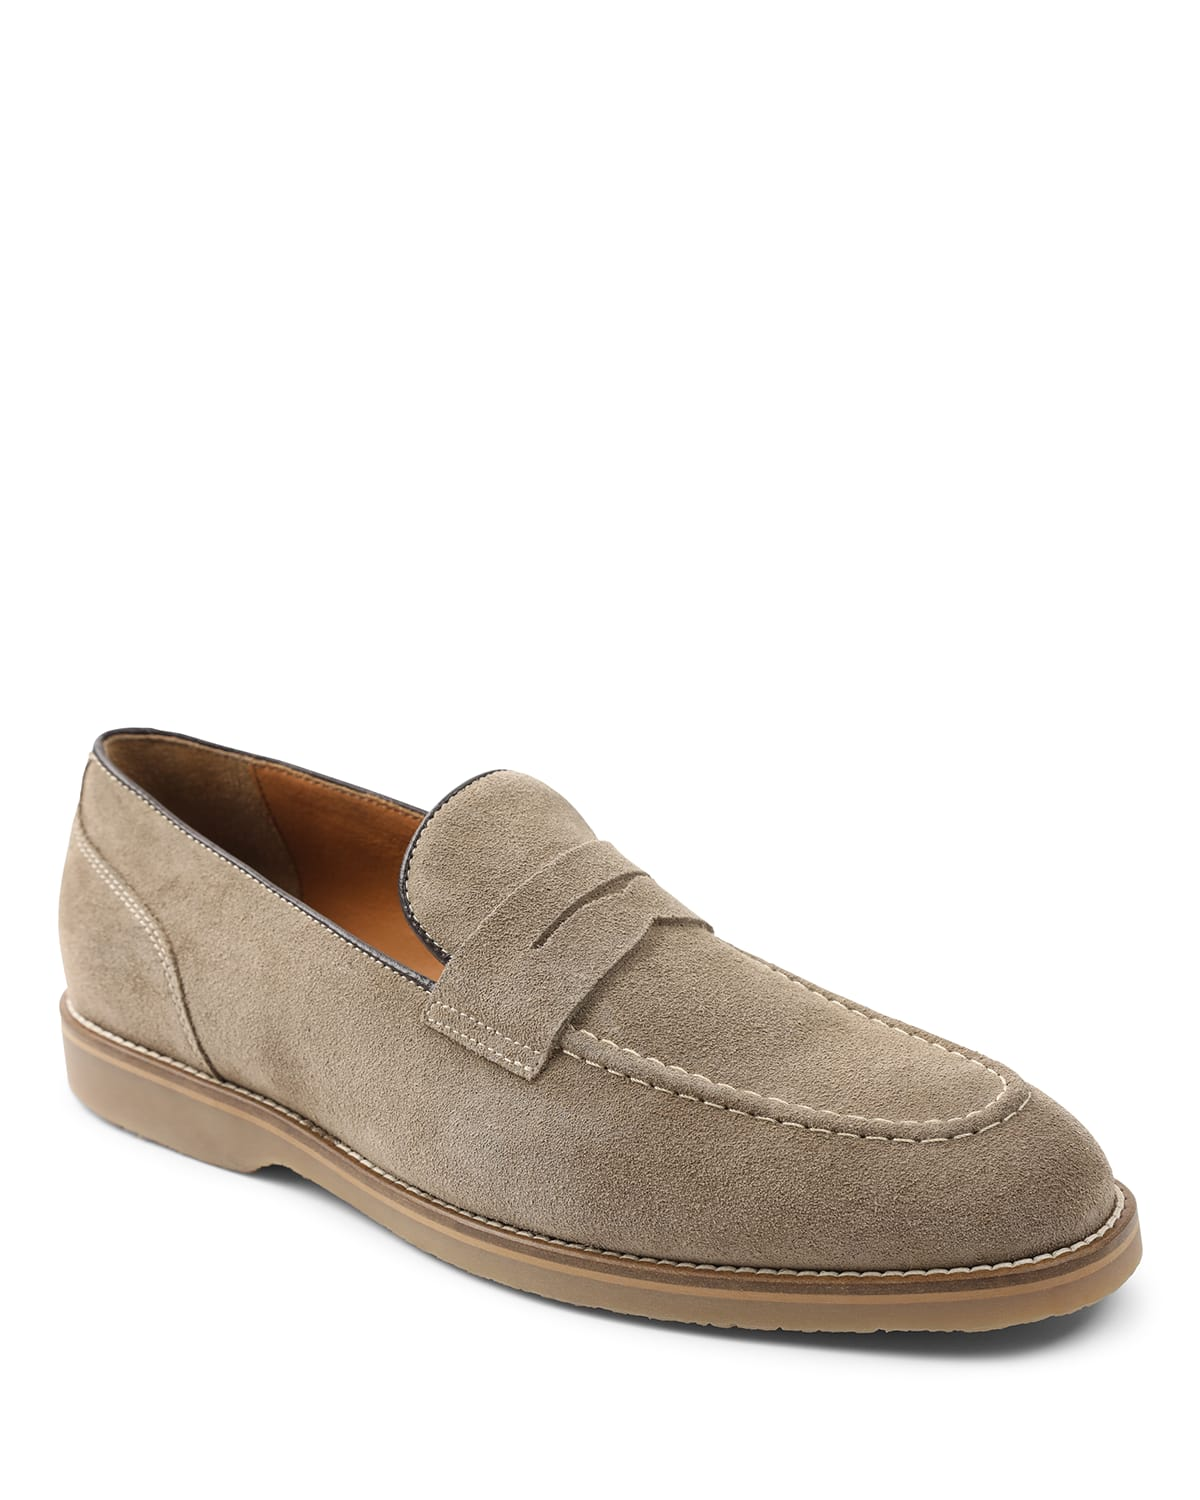 Men's Cali Suede Penny Loafers